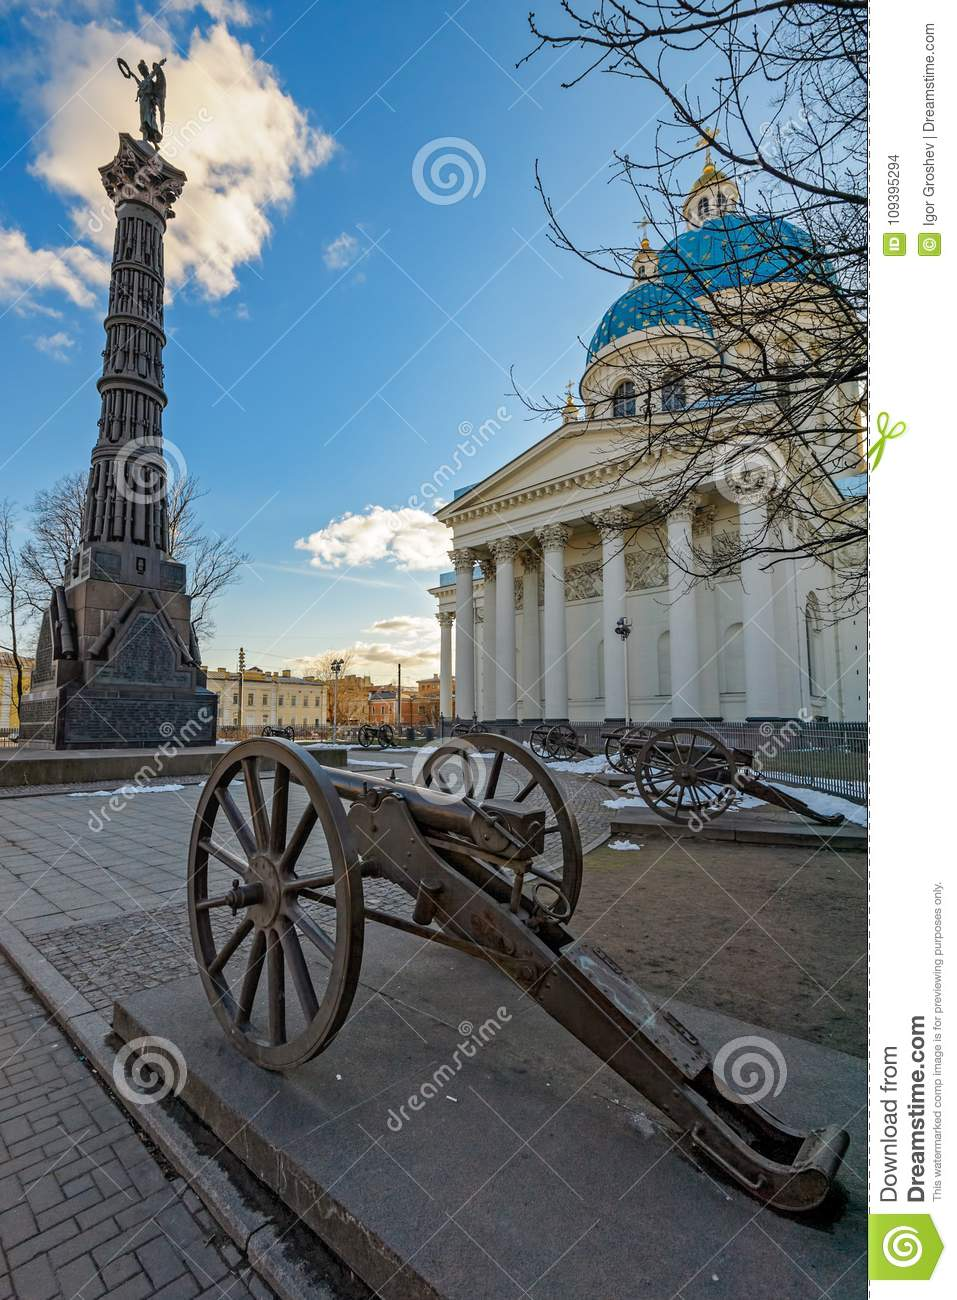 40590cd8d632 The old Turkish cannons surround the Russo-Turkish War Memorial Column of  Fame with Goddess Nike on square in front of Holy Trinity Cathedral.